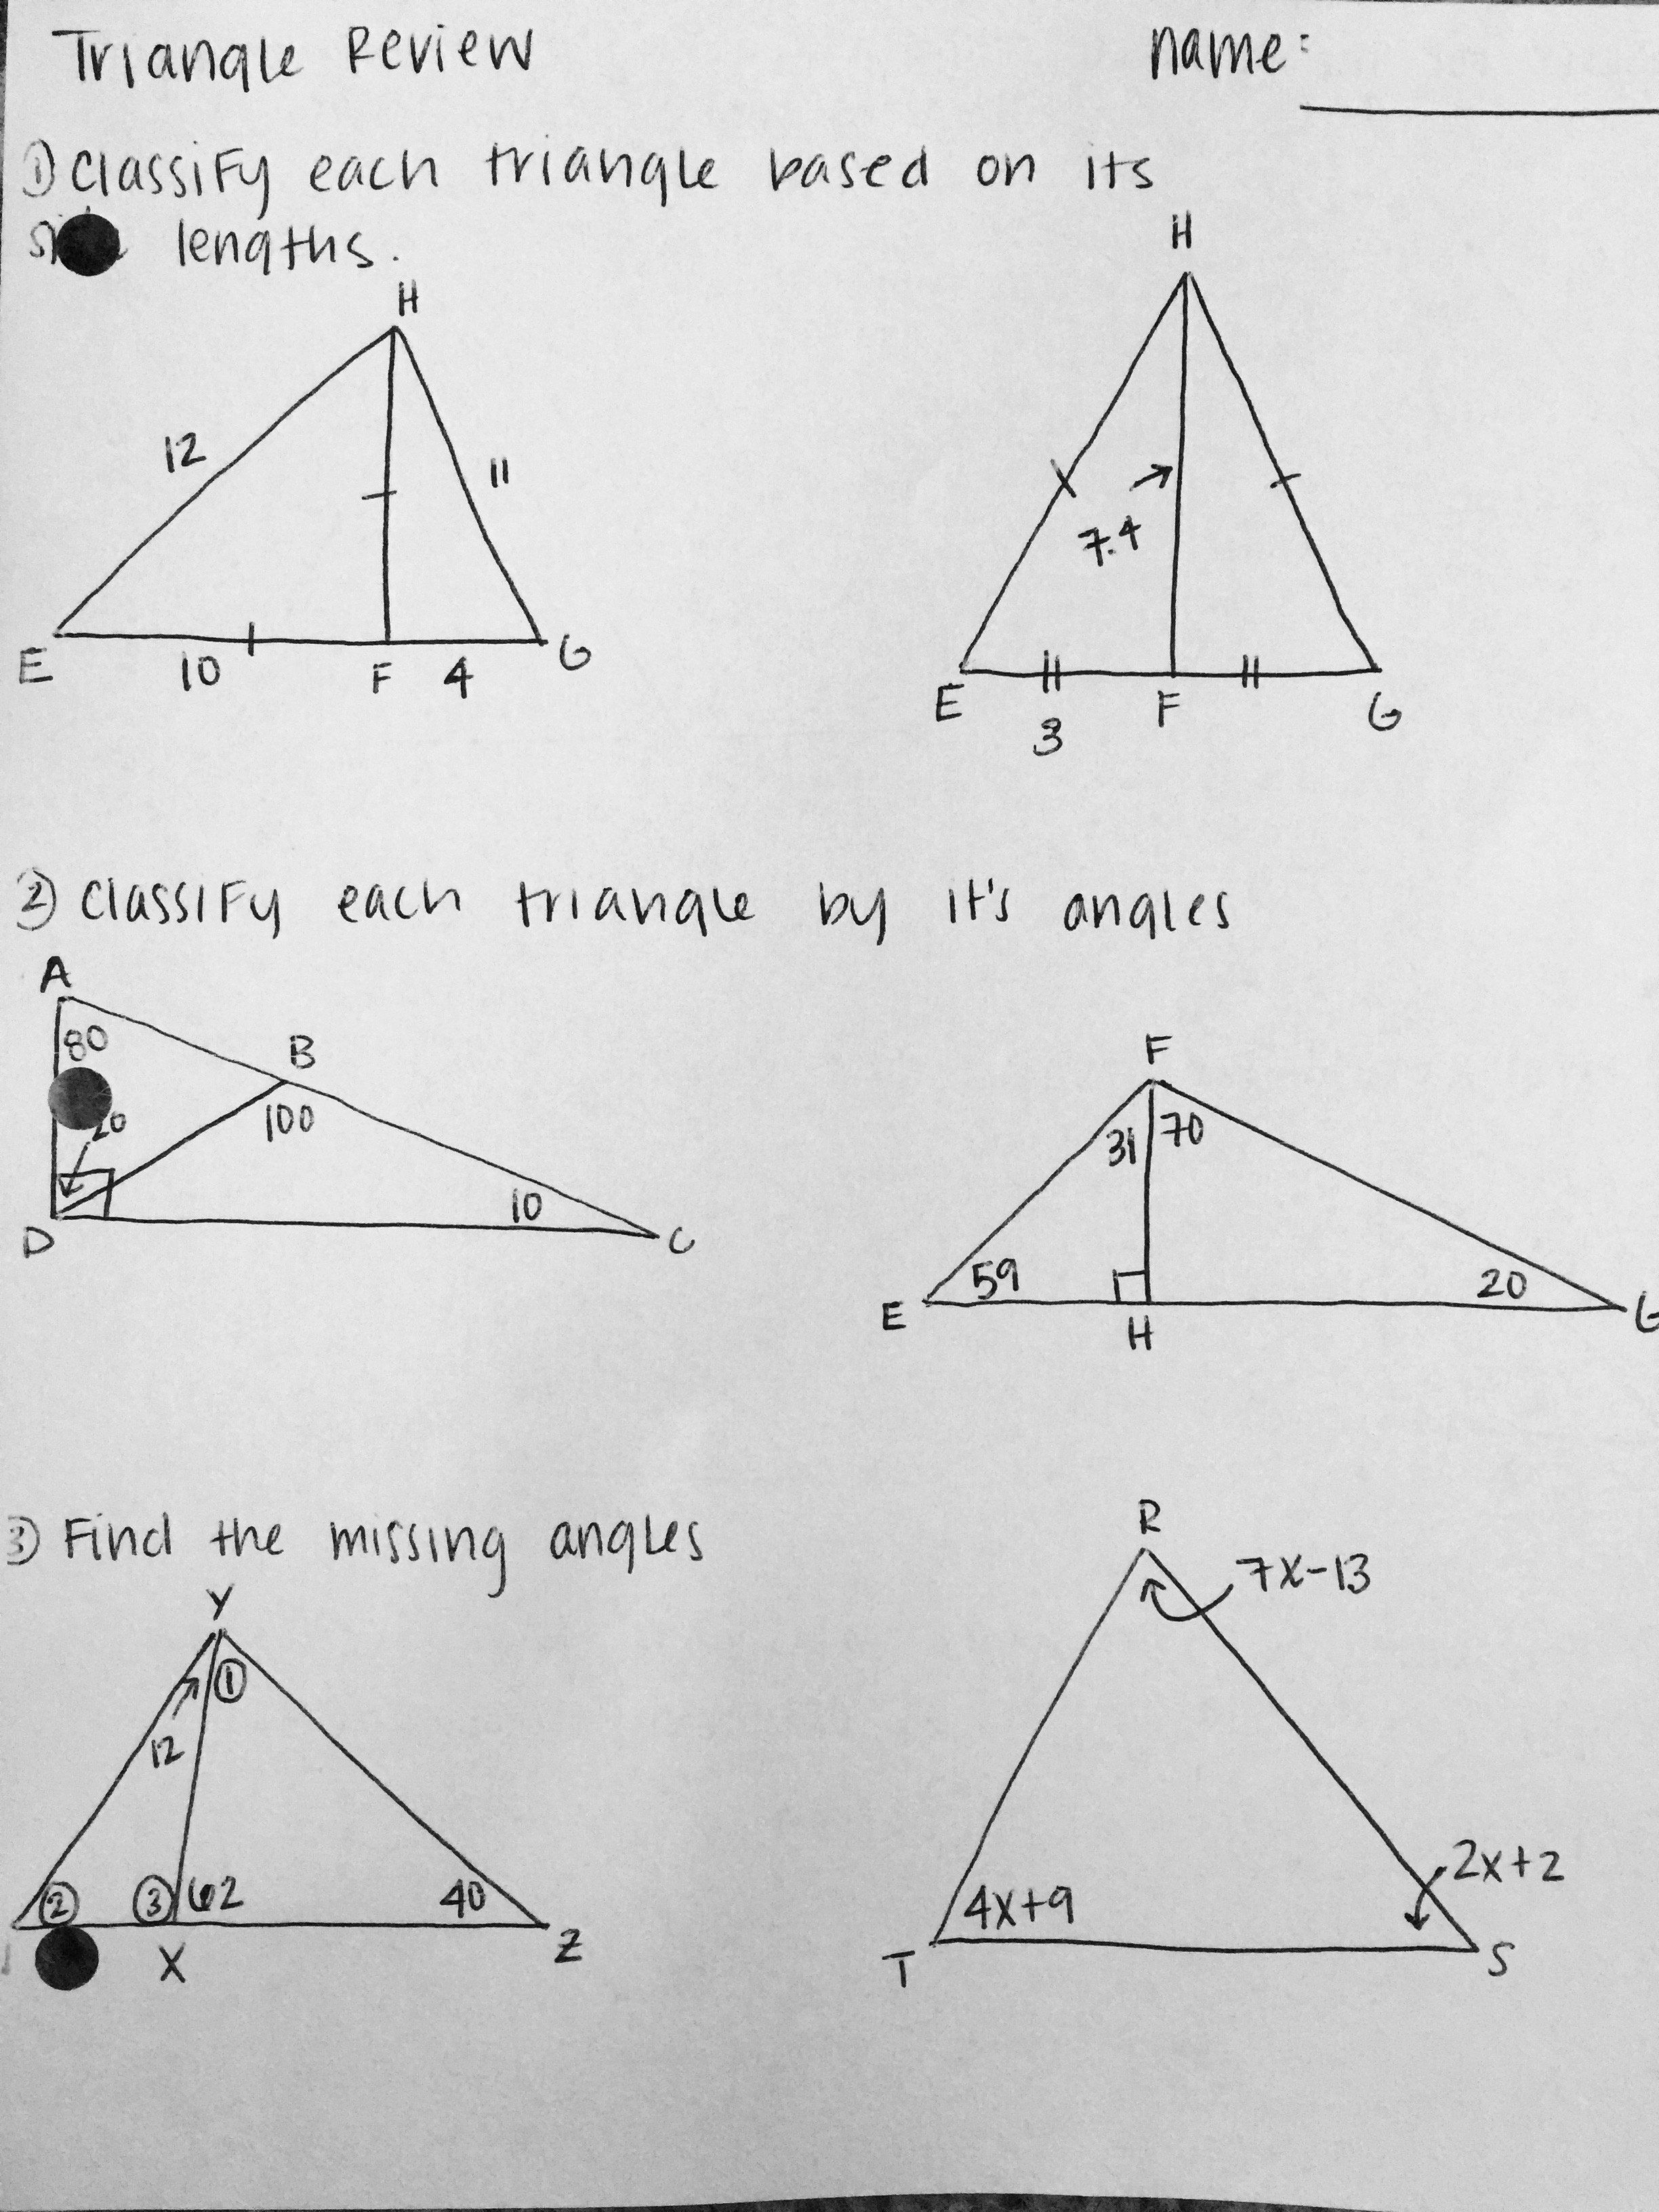 50 Congruent Triangles Worksheet With Answer In